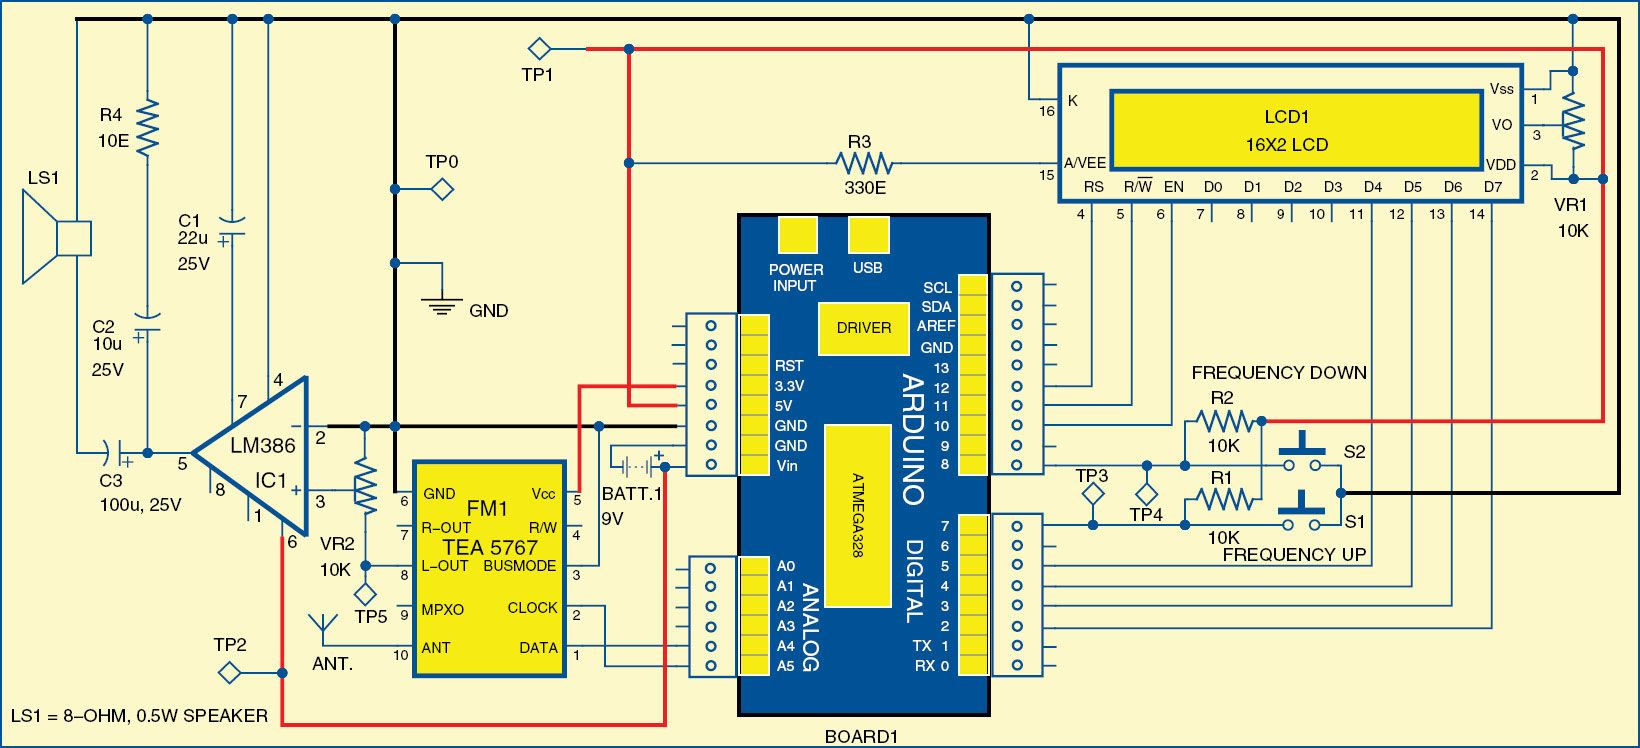 medium resolution of this project is of an fm radio based on philips tea5767 digital radio receiver module the radio receiver uses i2c interface with arduino uno development